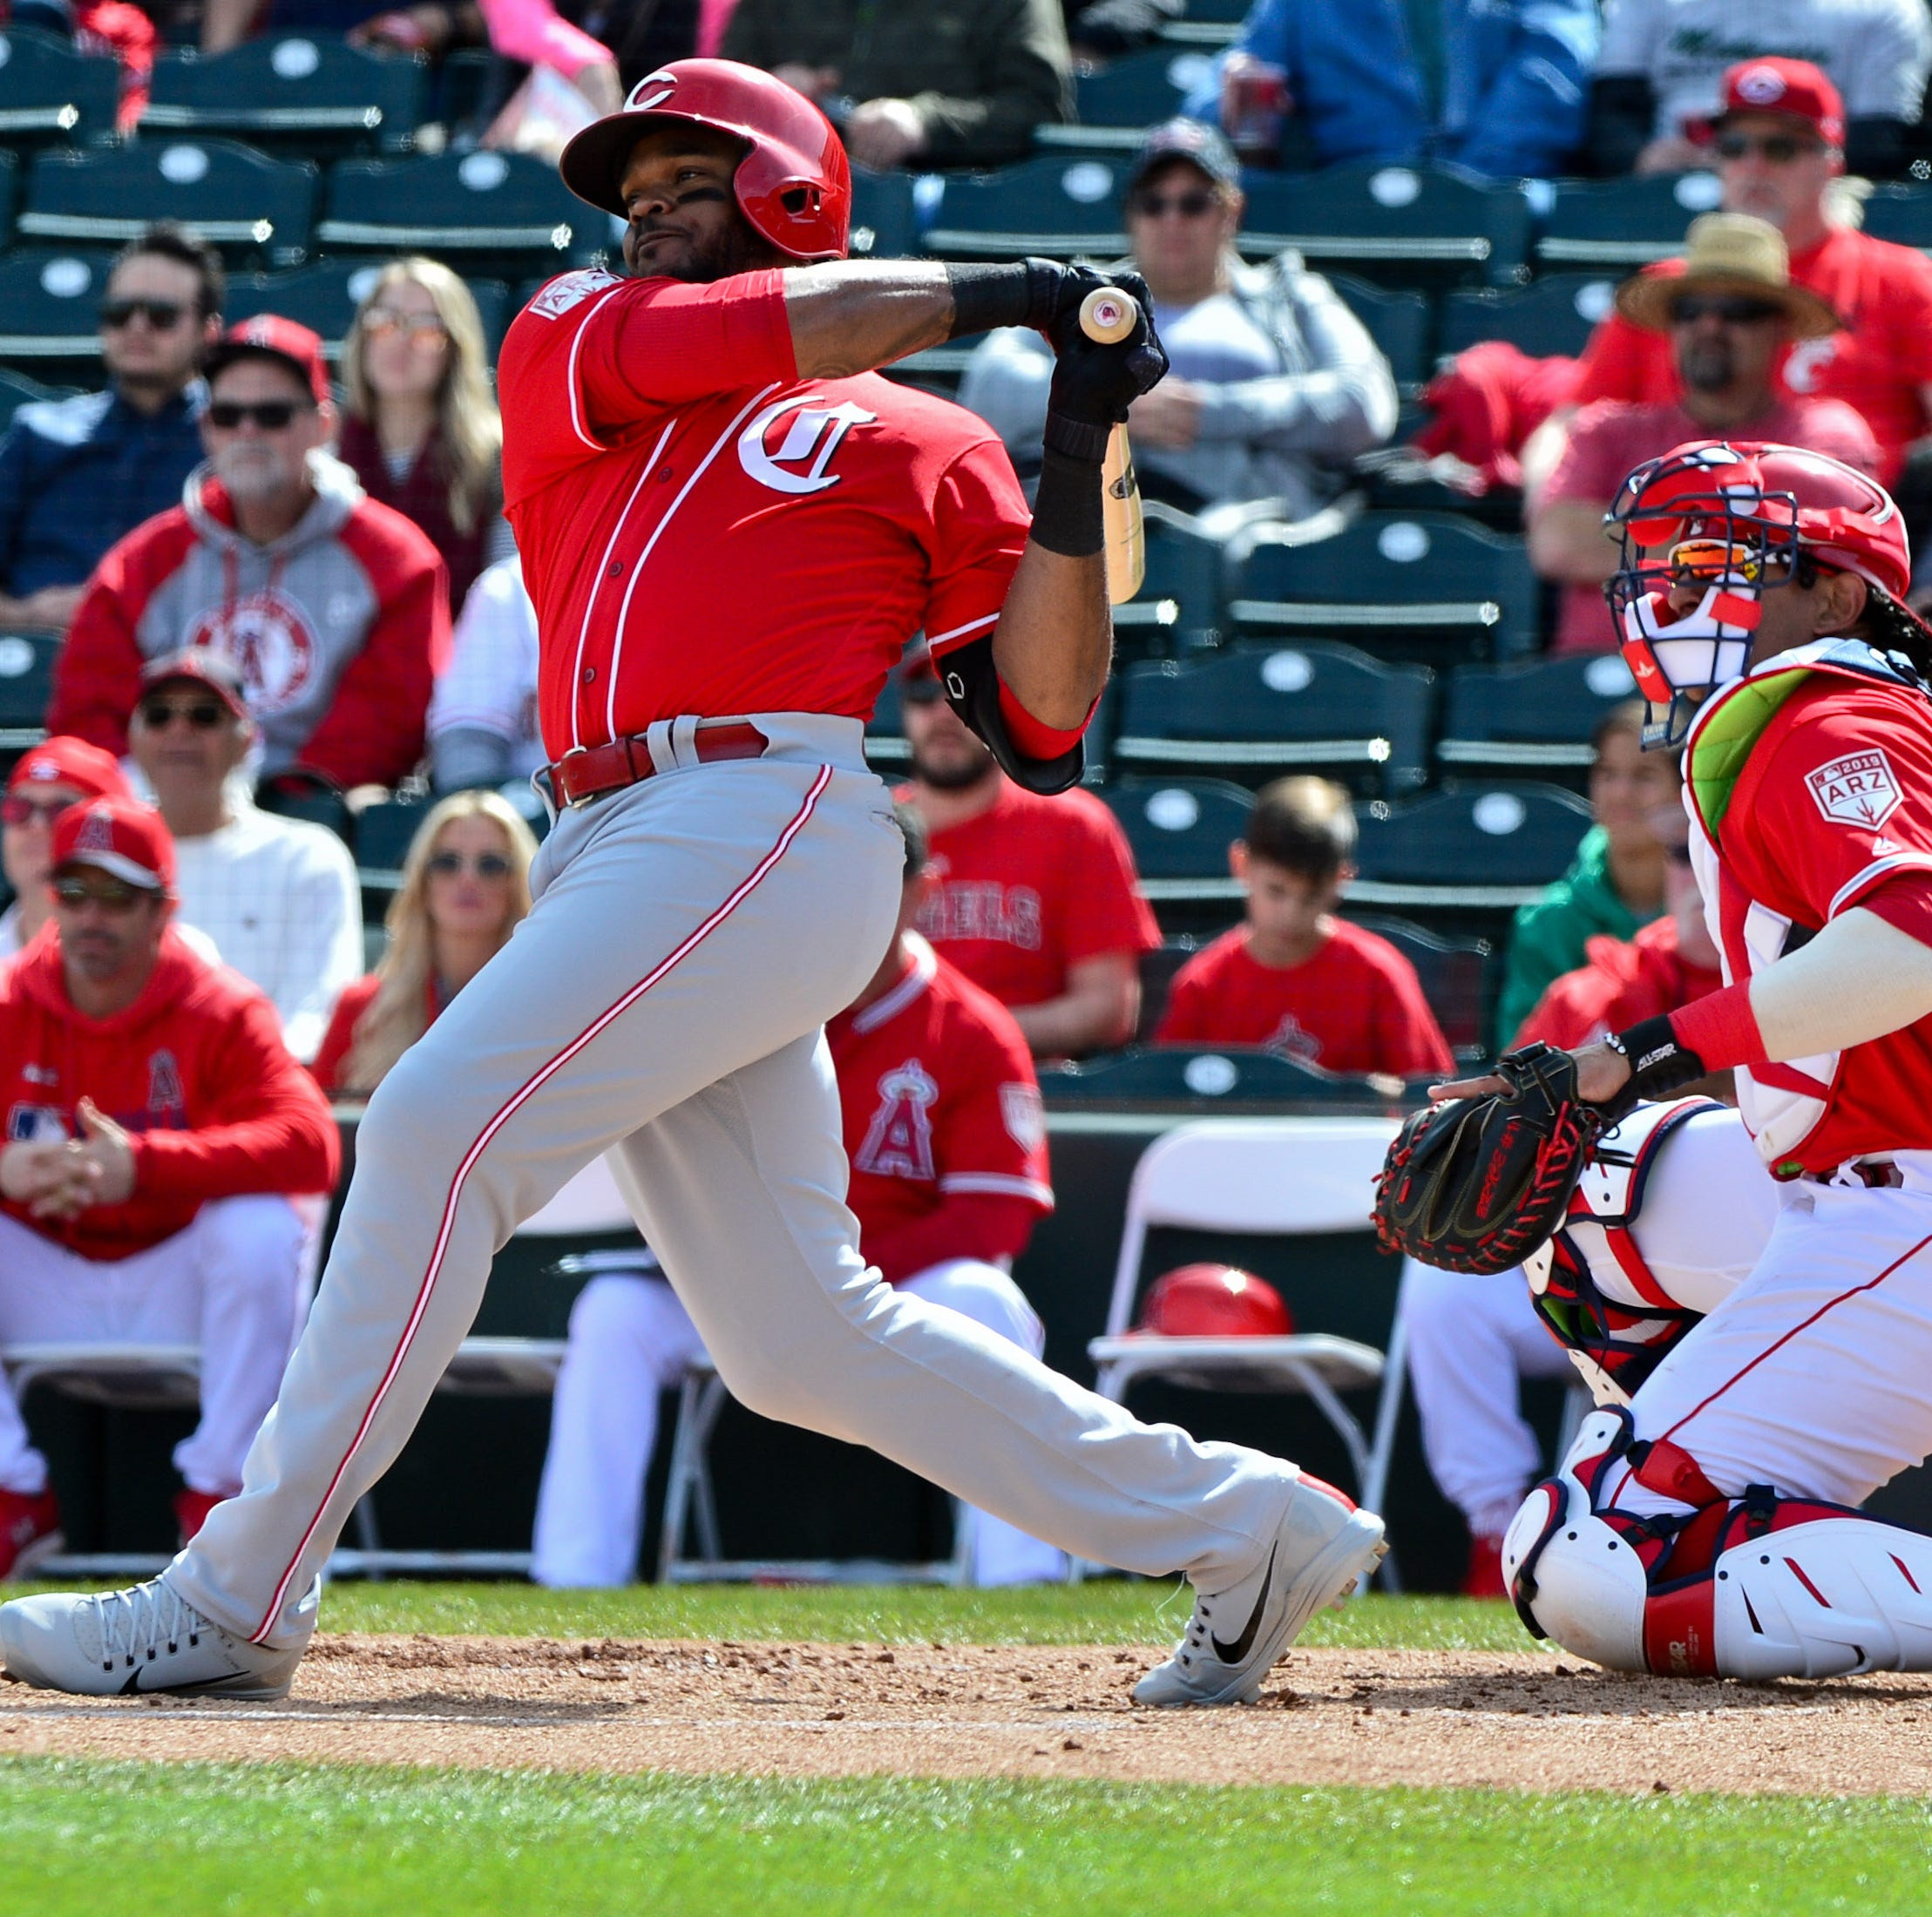 Phillip Ervin hits 3-run homer, Anthony DeSclafani sharp in Cincinnati Reds' 5-2 win over Texas Rangers